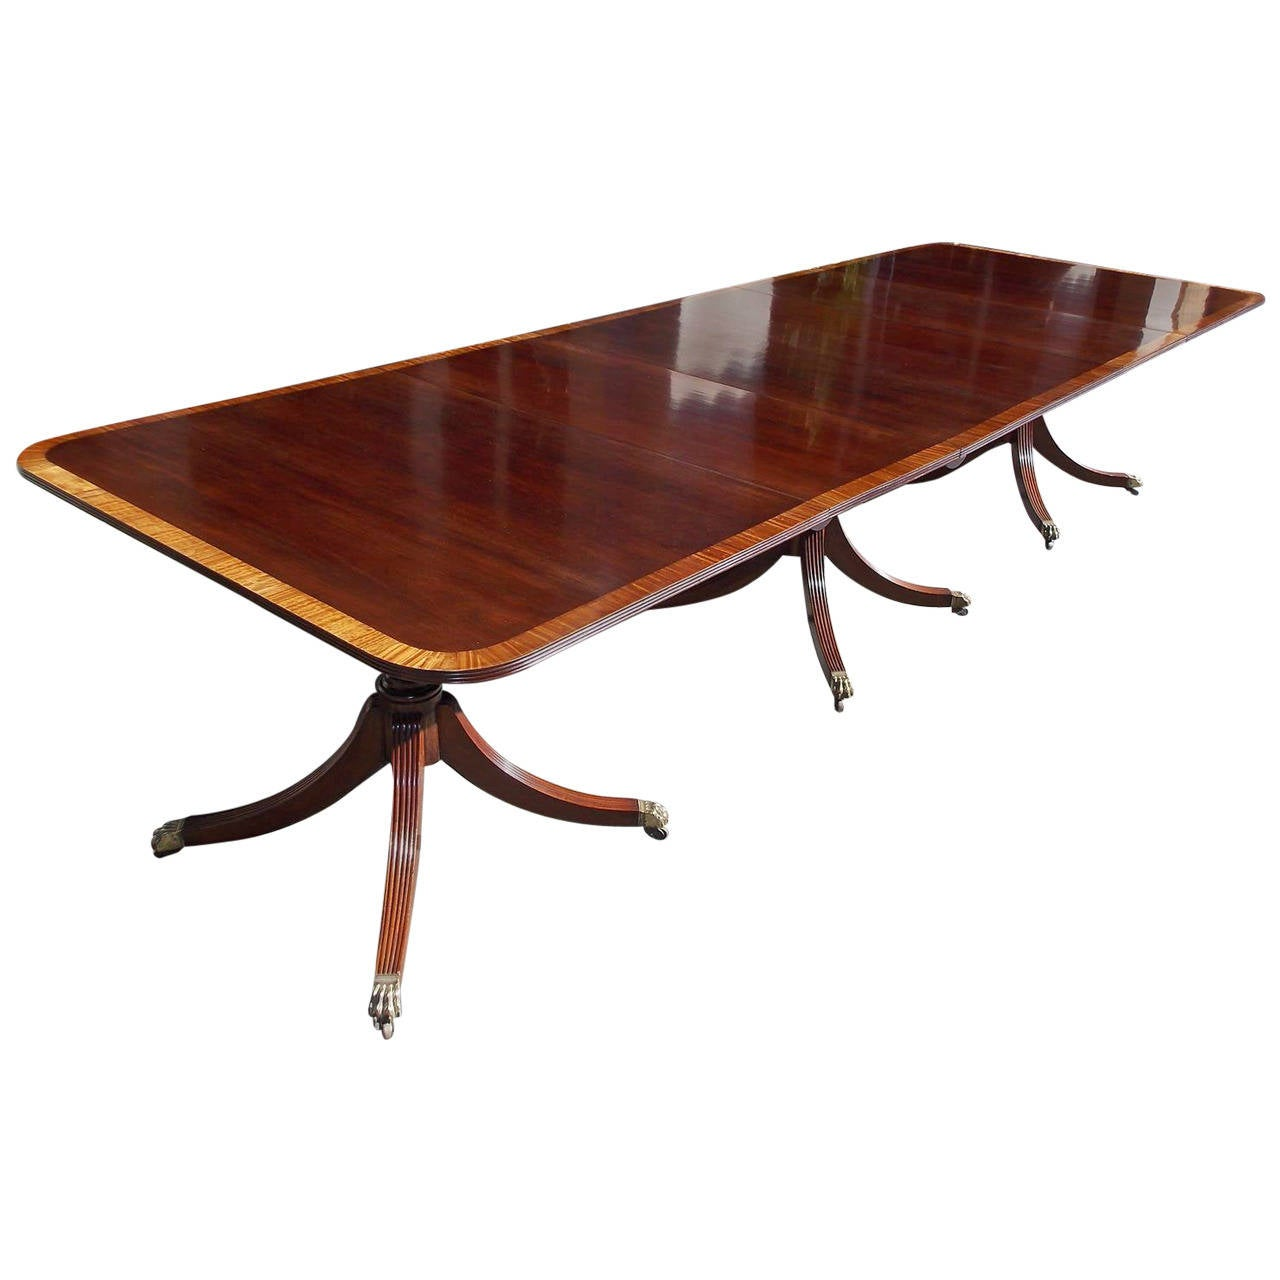 English Mahogany Satinwood Inlaid Triple Pedestal Dining Room Table, Circa 1820